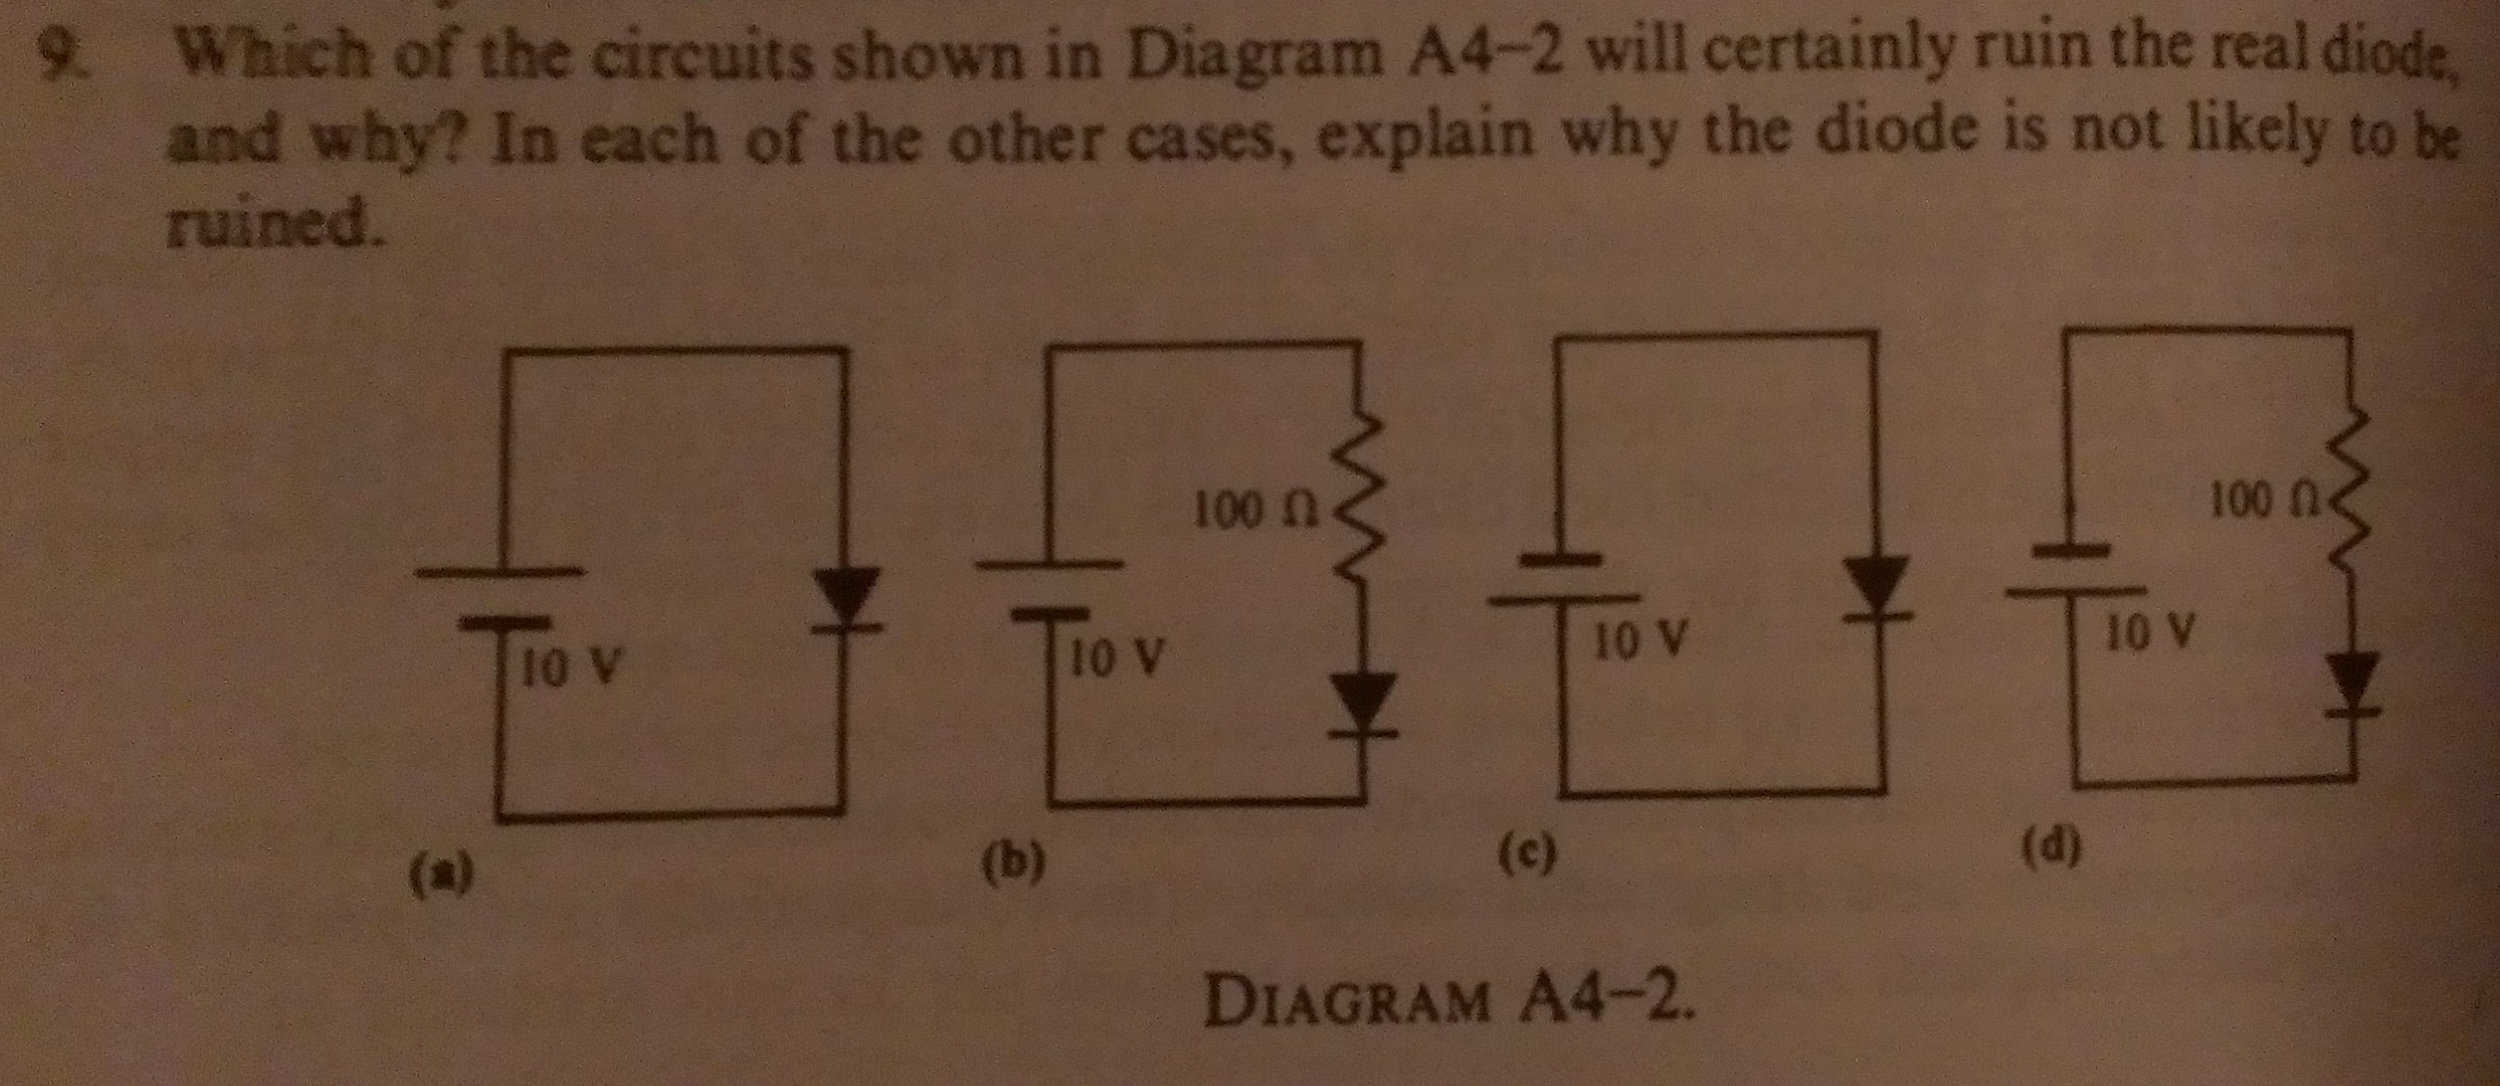 Which of the circuits shown in Diagram A4-2 will c